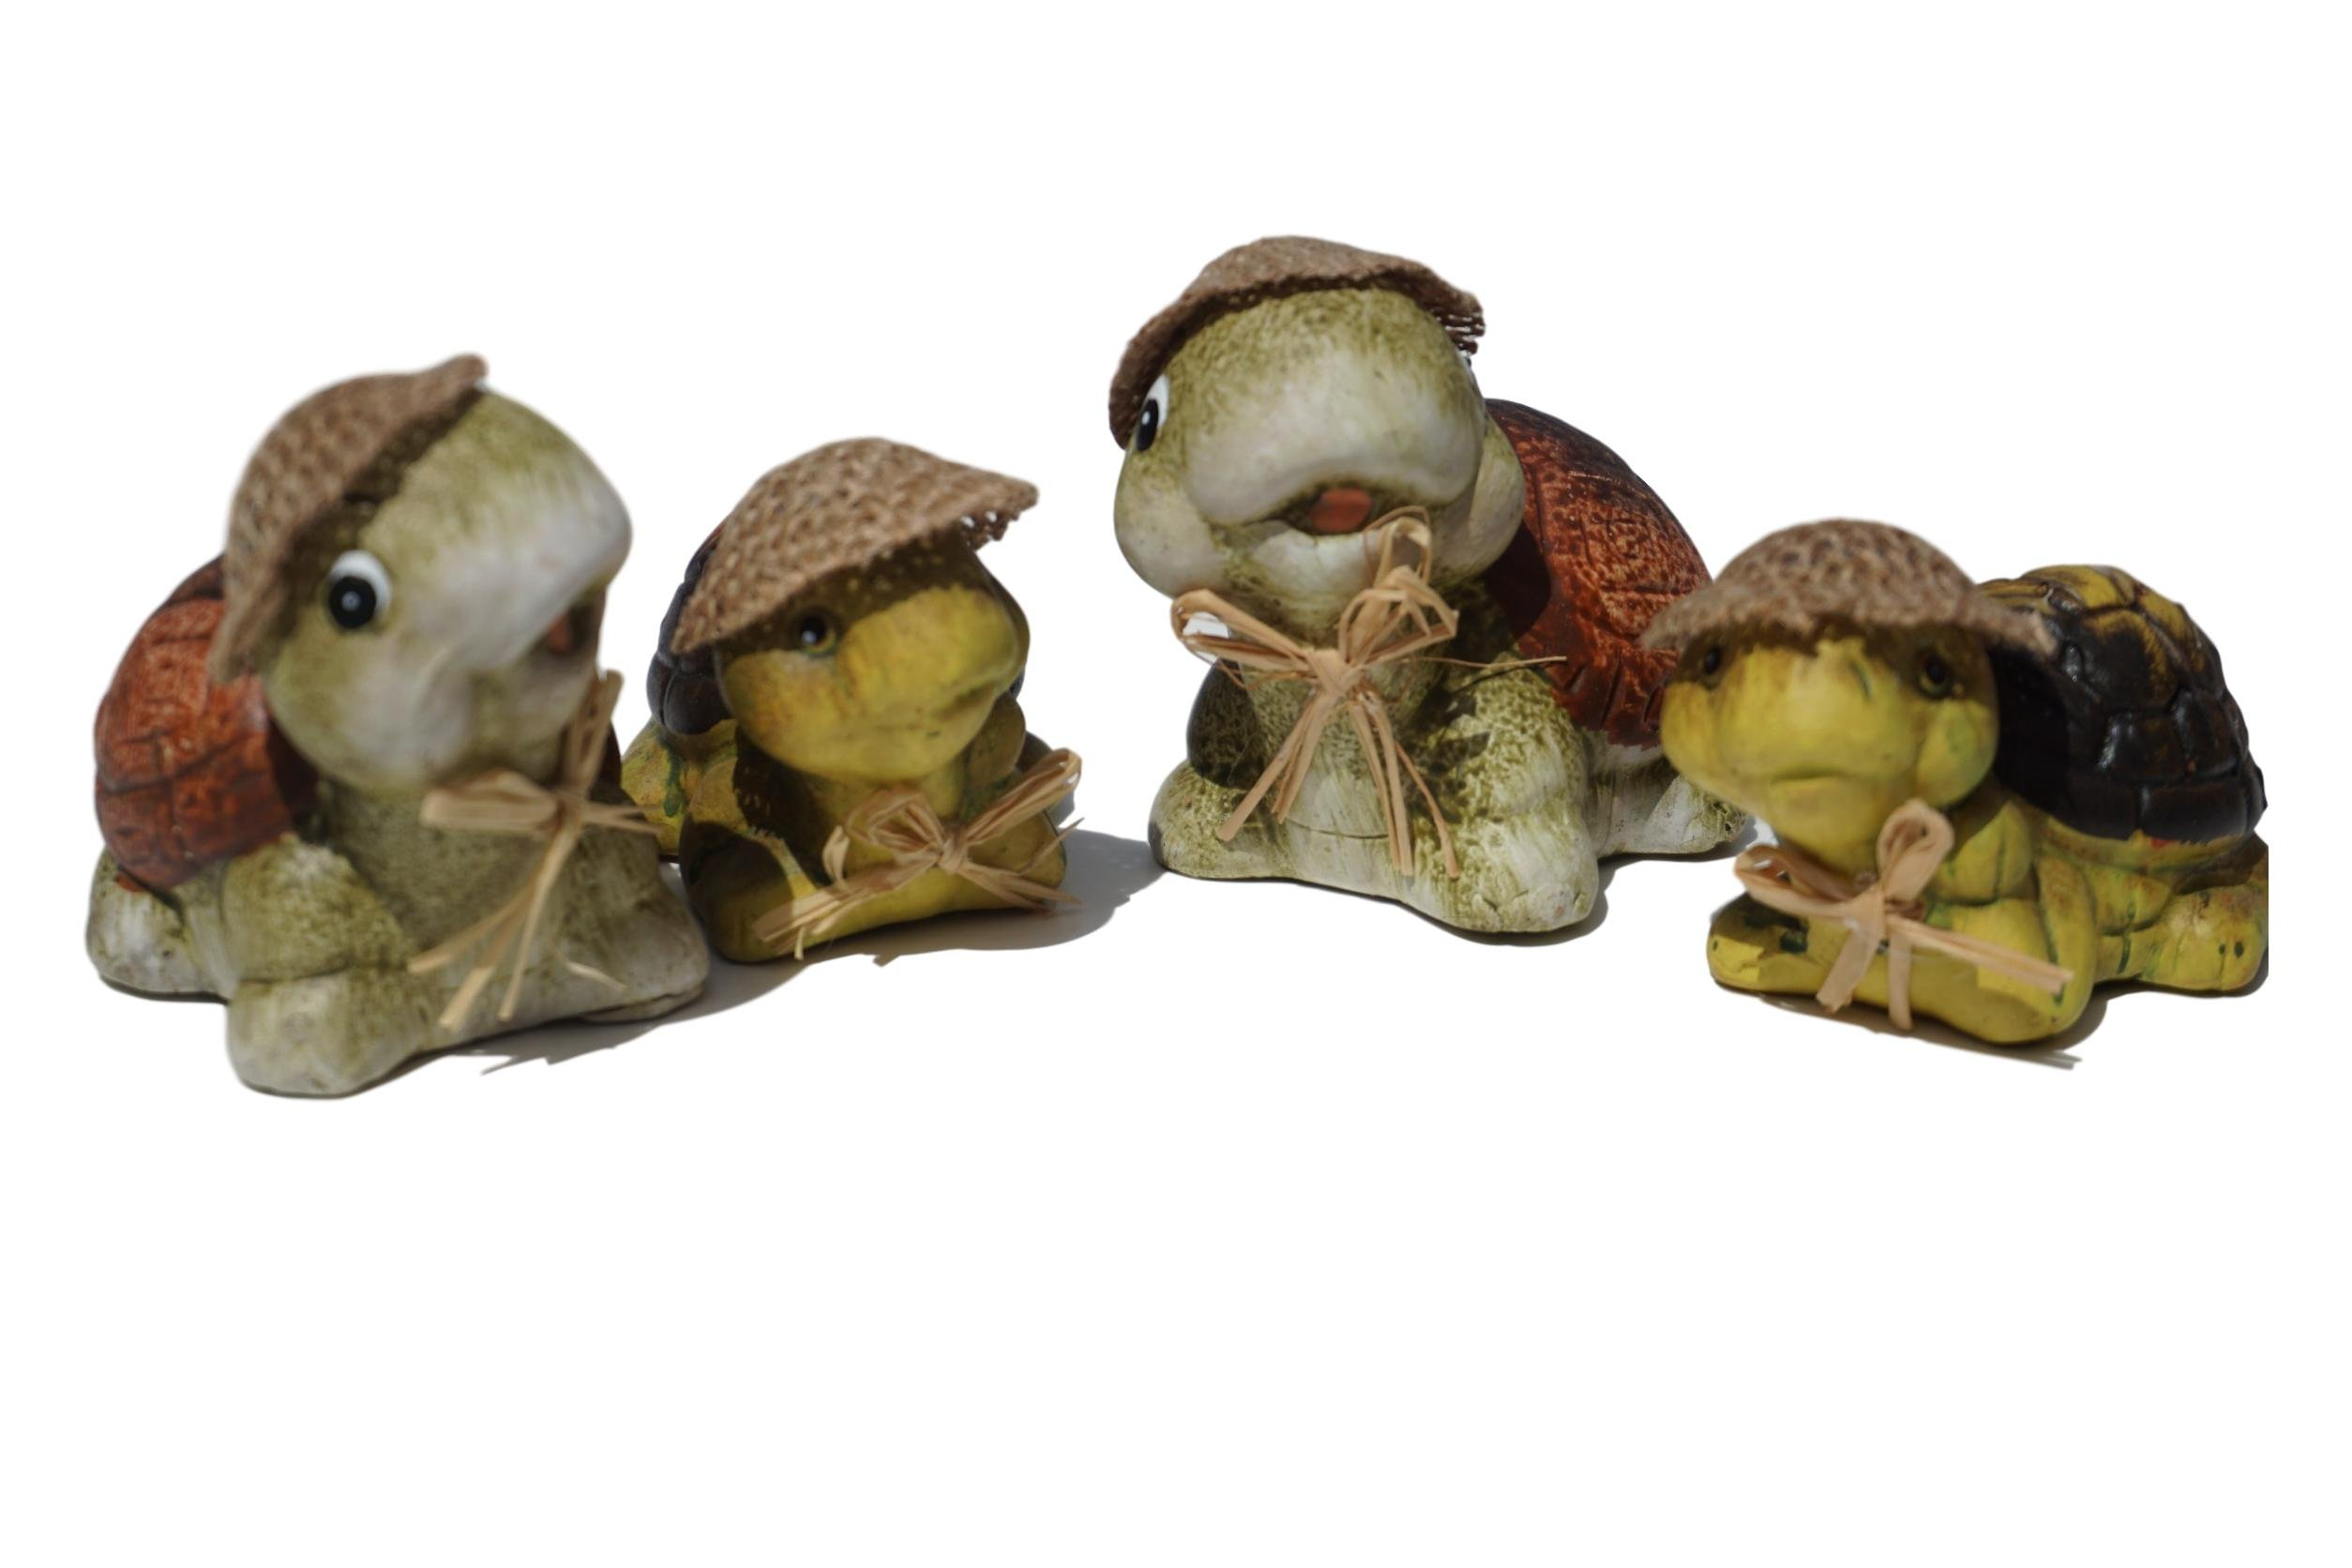 Bonita Home By Essential Happy Miniature Ceramic Turtle Family set of Four